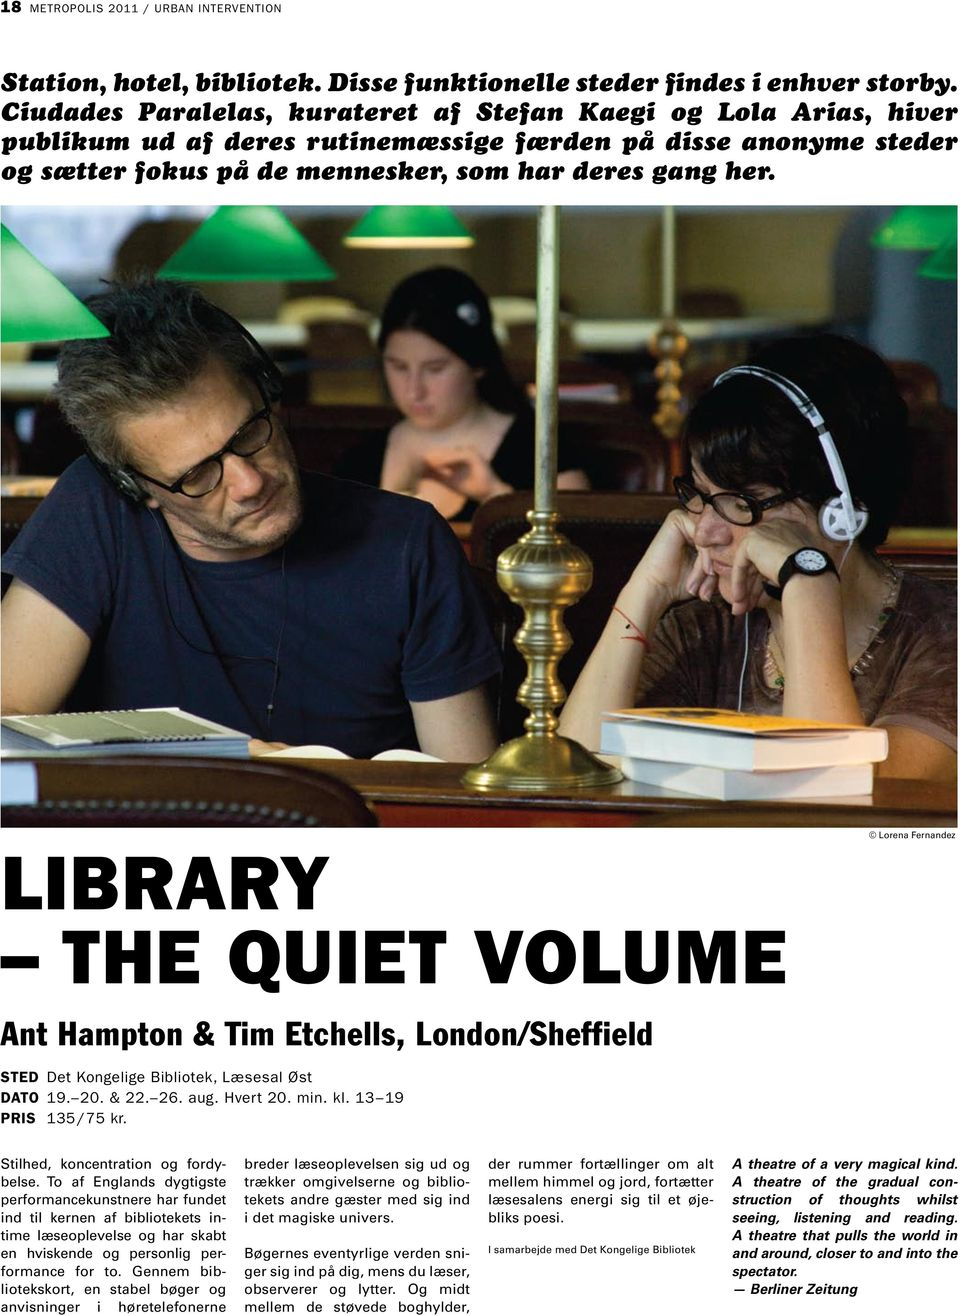 LIBRARY THE QUIET VOLUME Ant Hampton & Tim Etchells, London/Sheffield STED Det Kongelige Bibliotek, Læsesal Øst DATO 19. 20. & 22. 26. aug. Hvert 20. min. kl. 13 19 PRIS 135/75 kr.